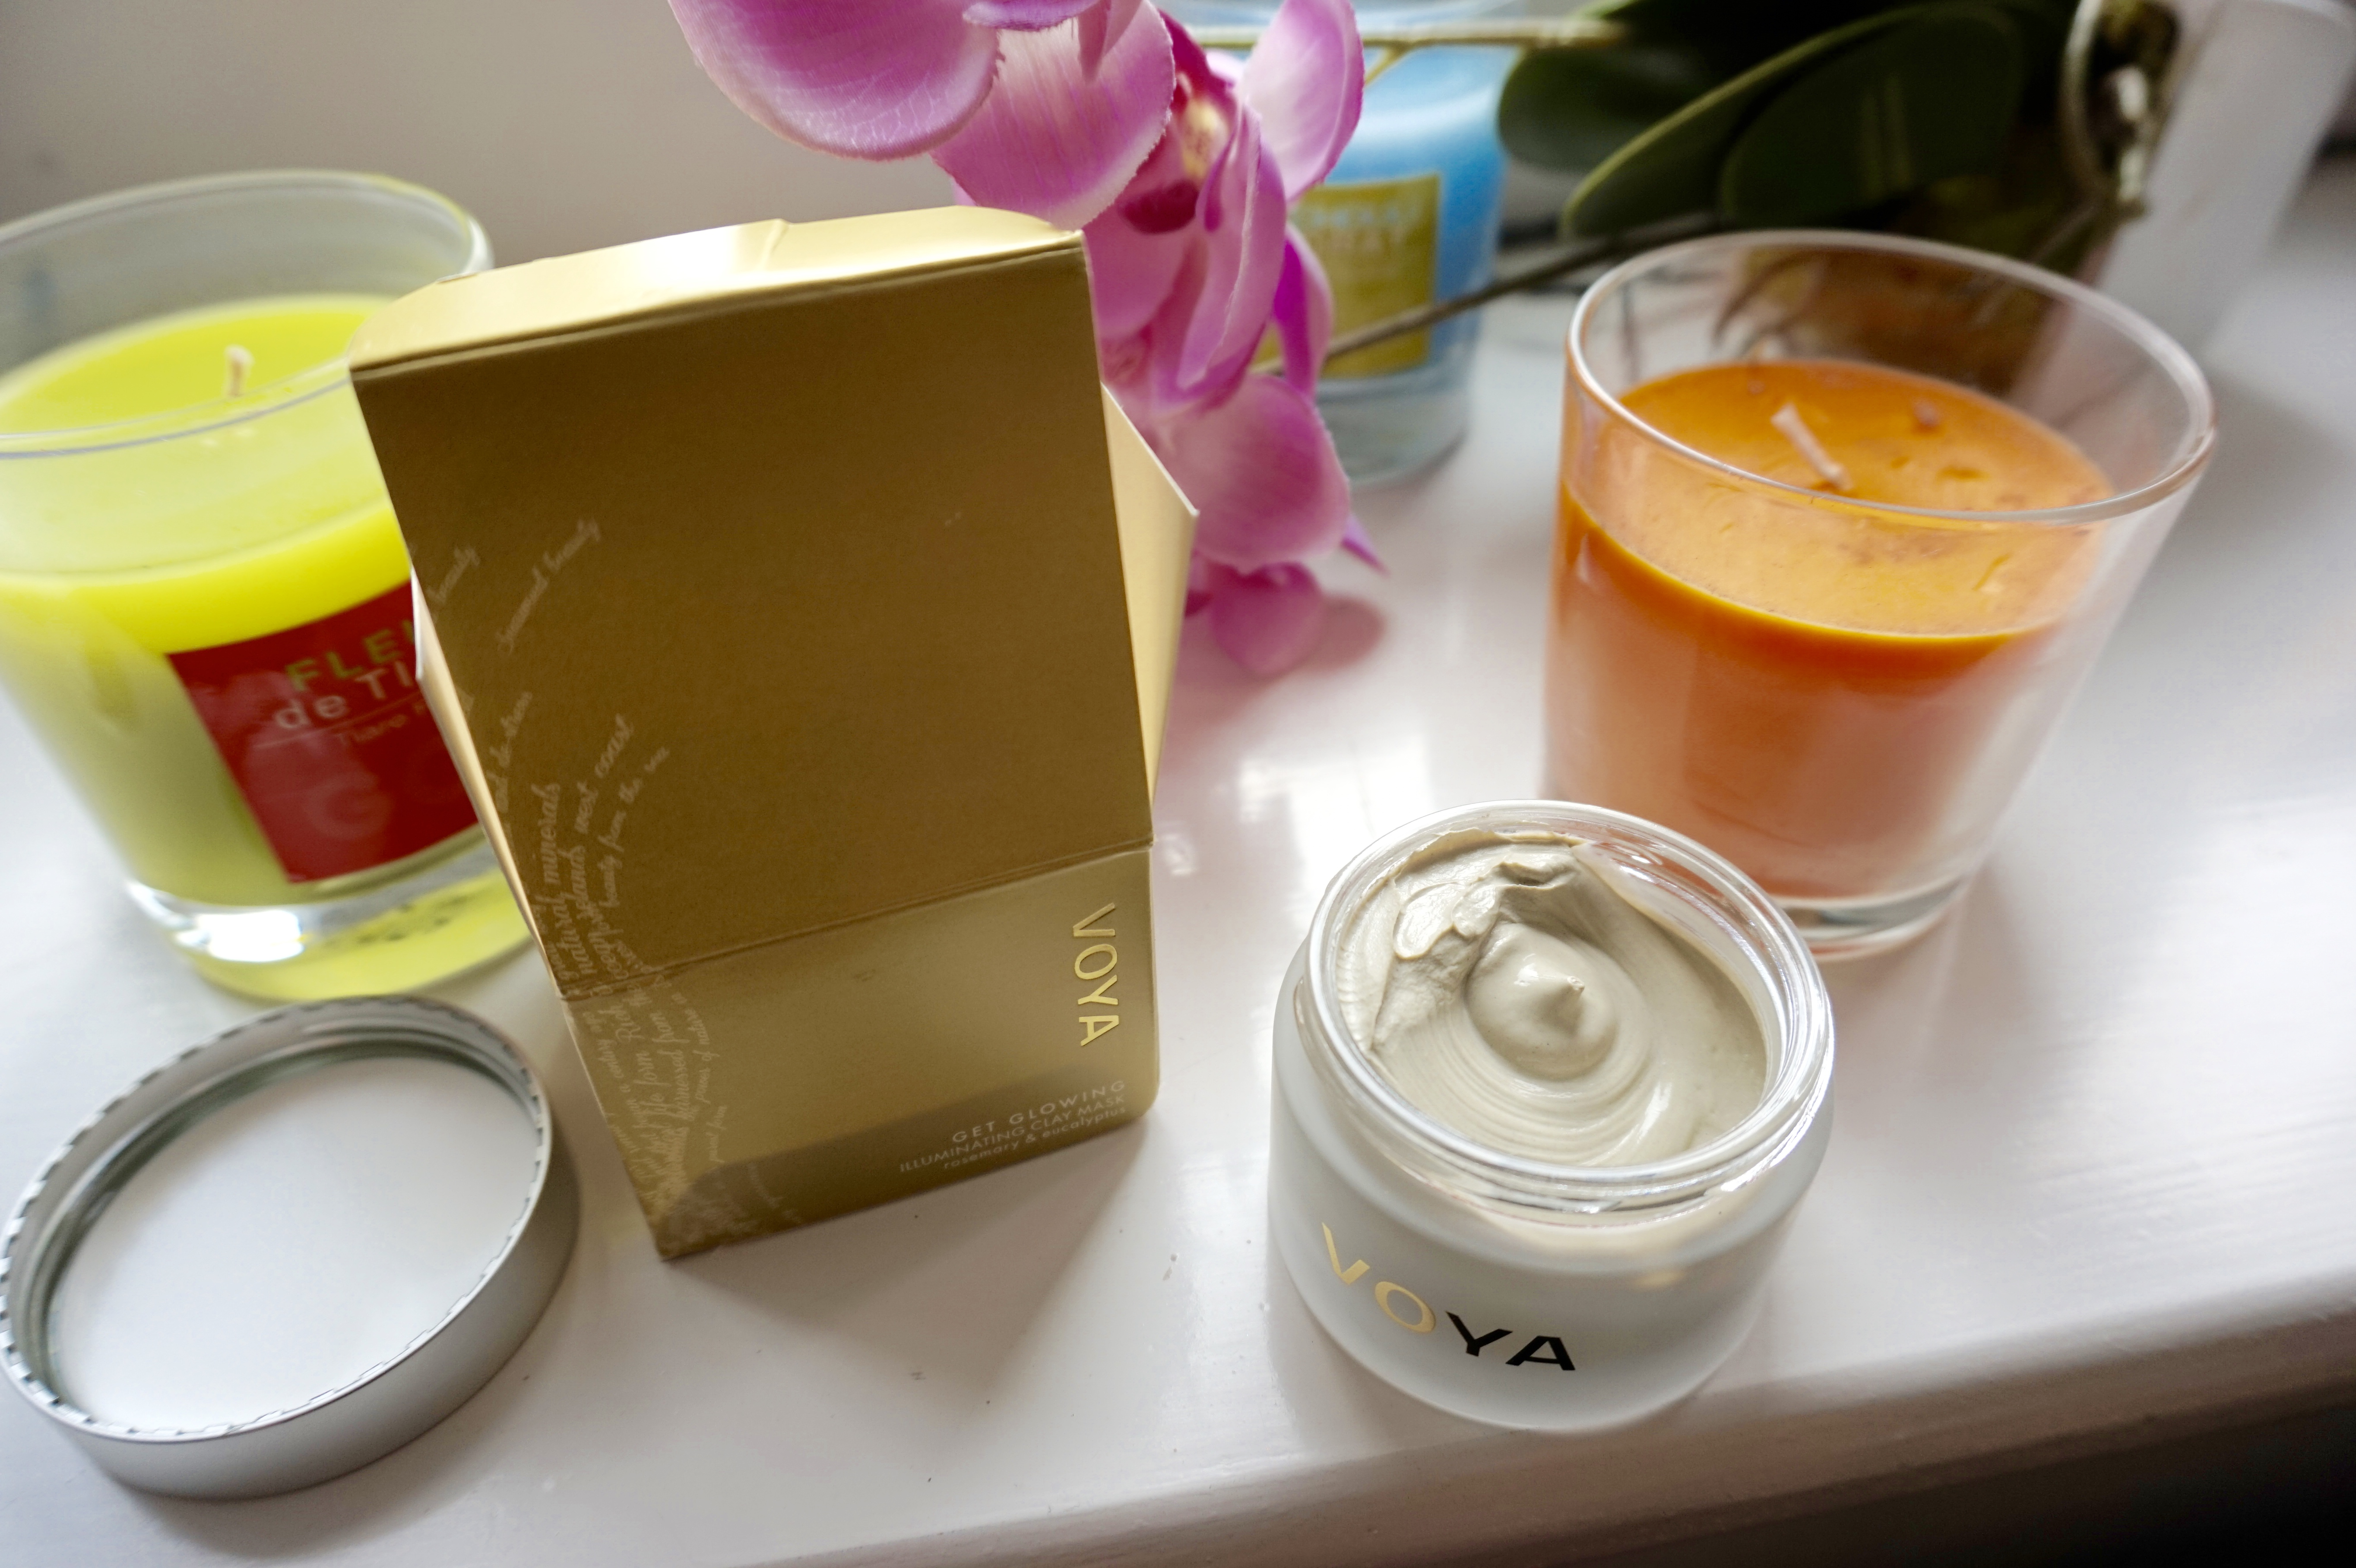 voya-get-glowing-illuminating-clay-mask-raychel-says